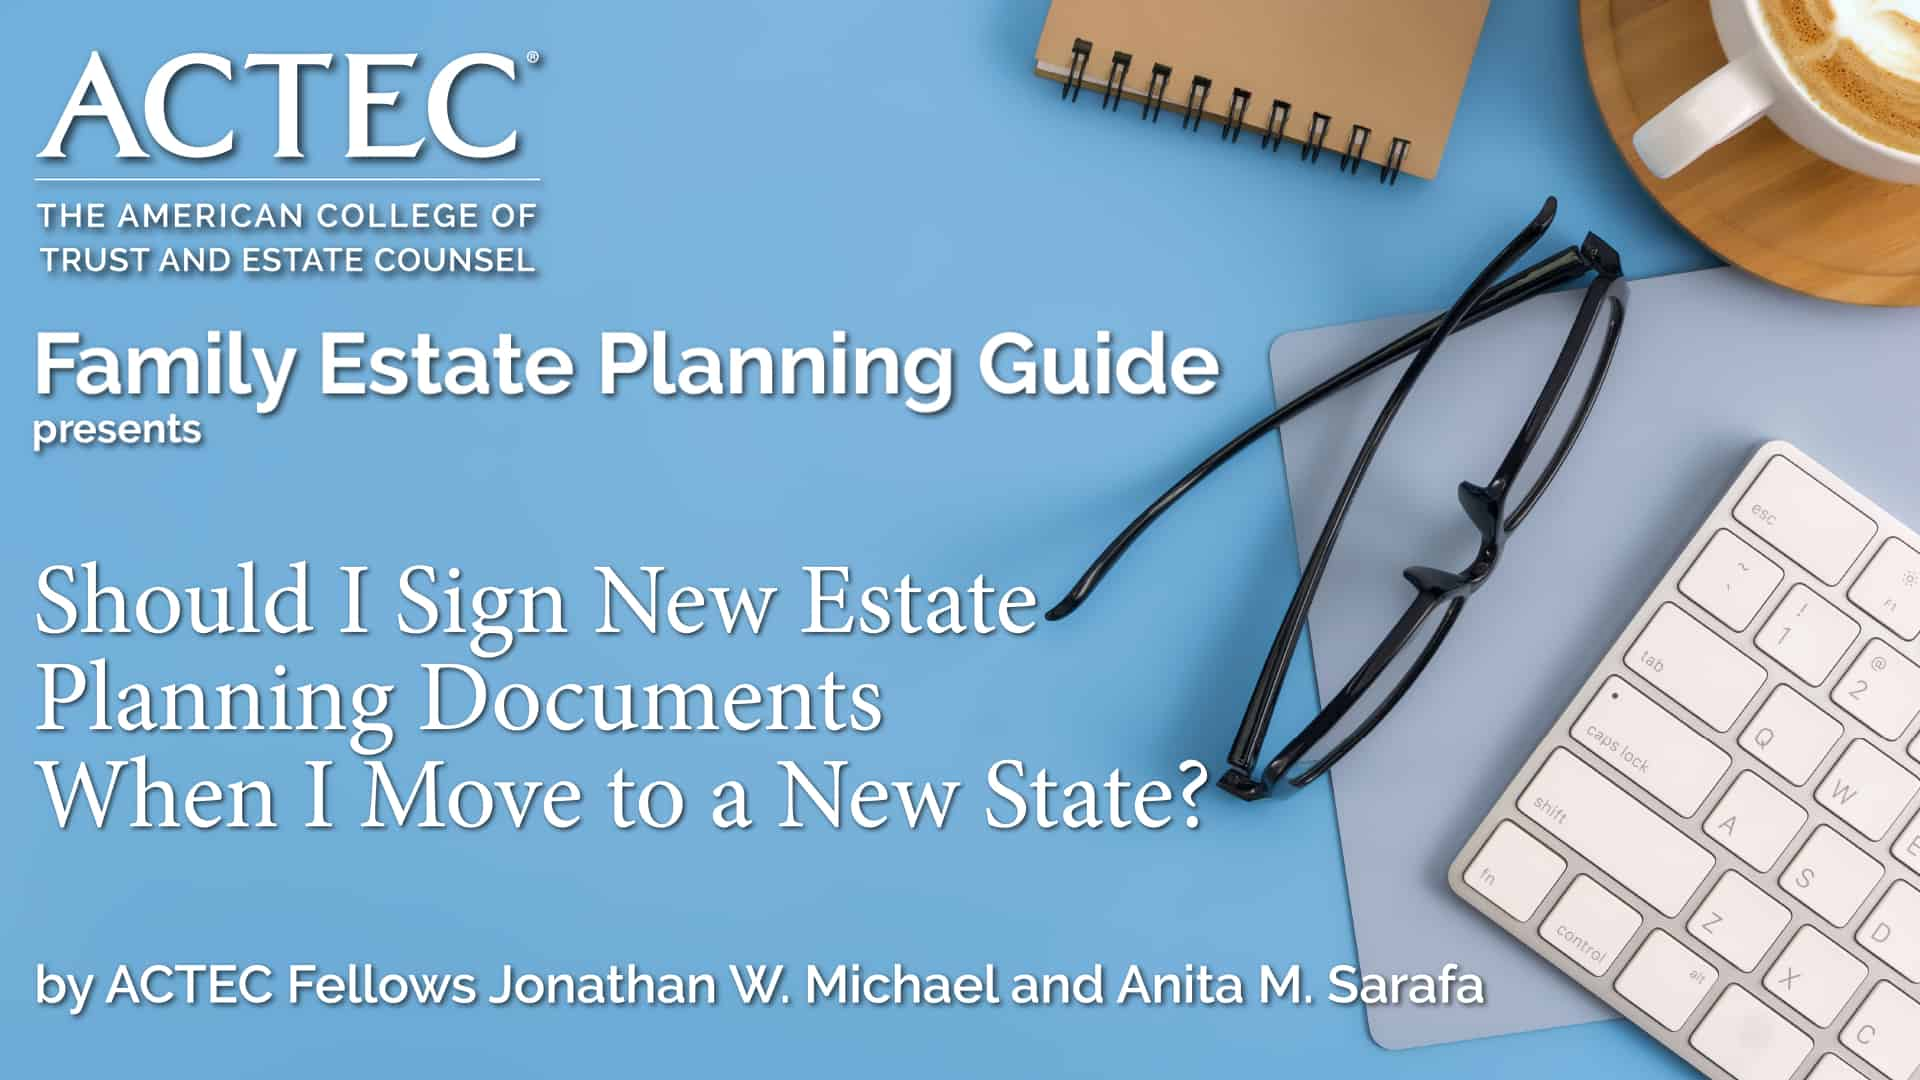 Should I Sign New Estate Planning Documents When I Move to a New State?